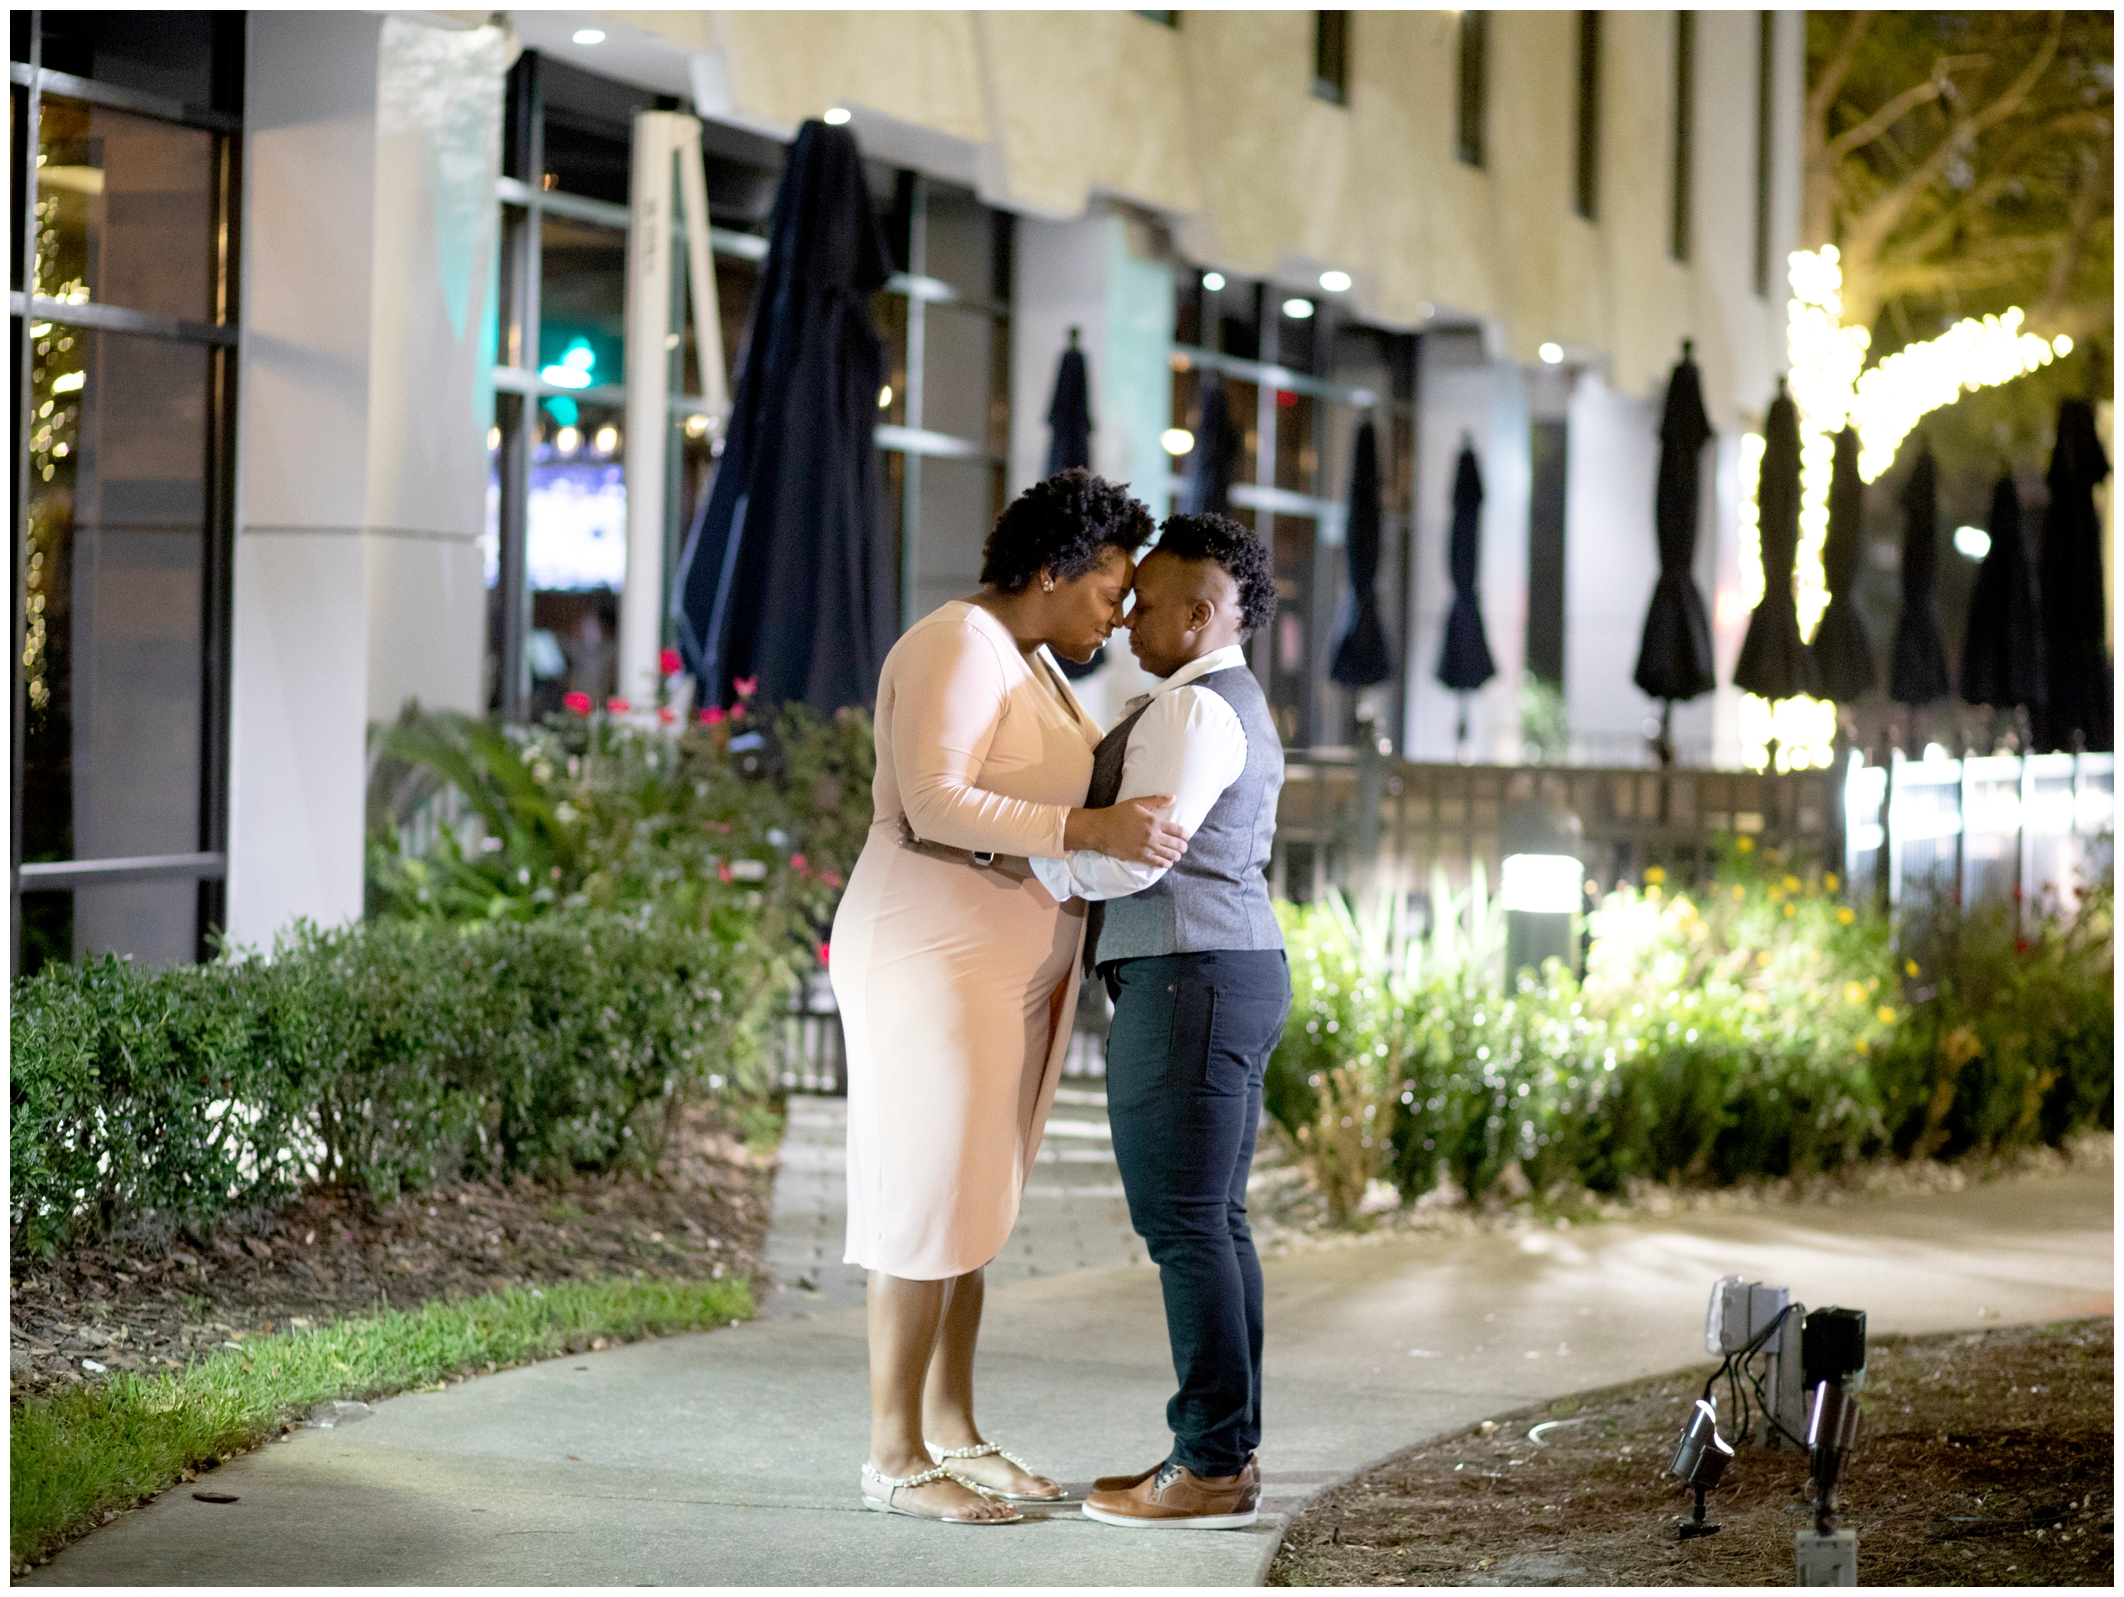 Surprise double proposal at river and post, jacksonville, florida - Lisa Silva Photography_0195.jpg